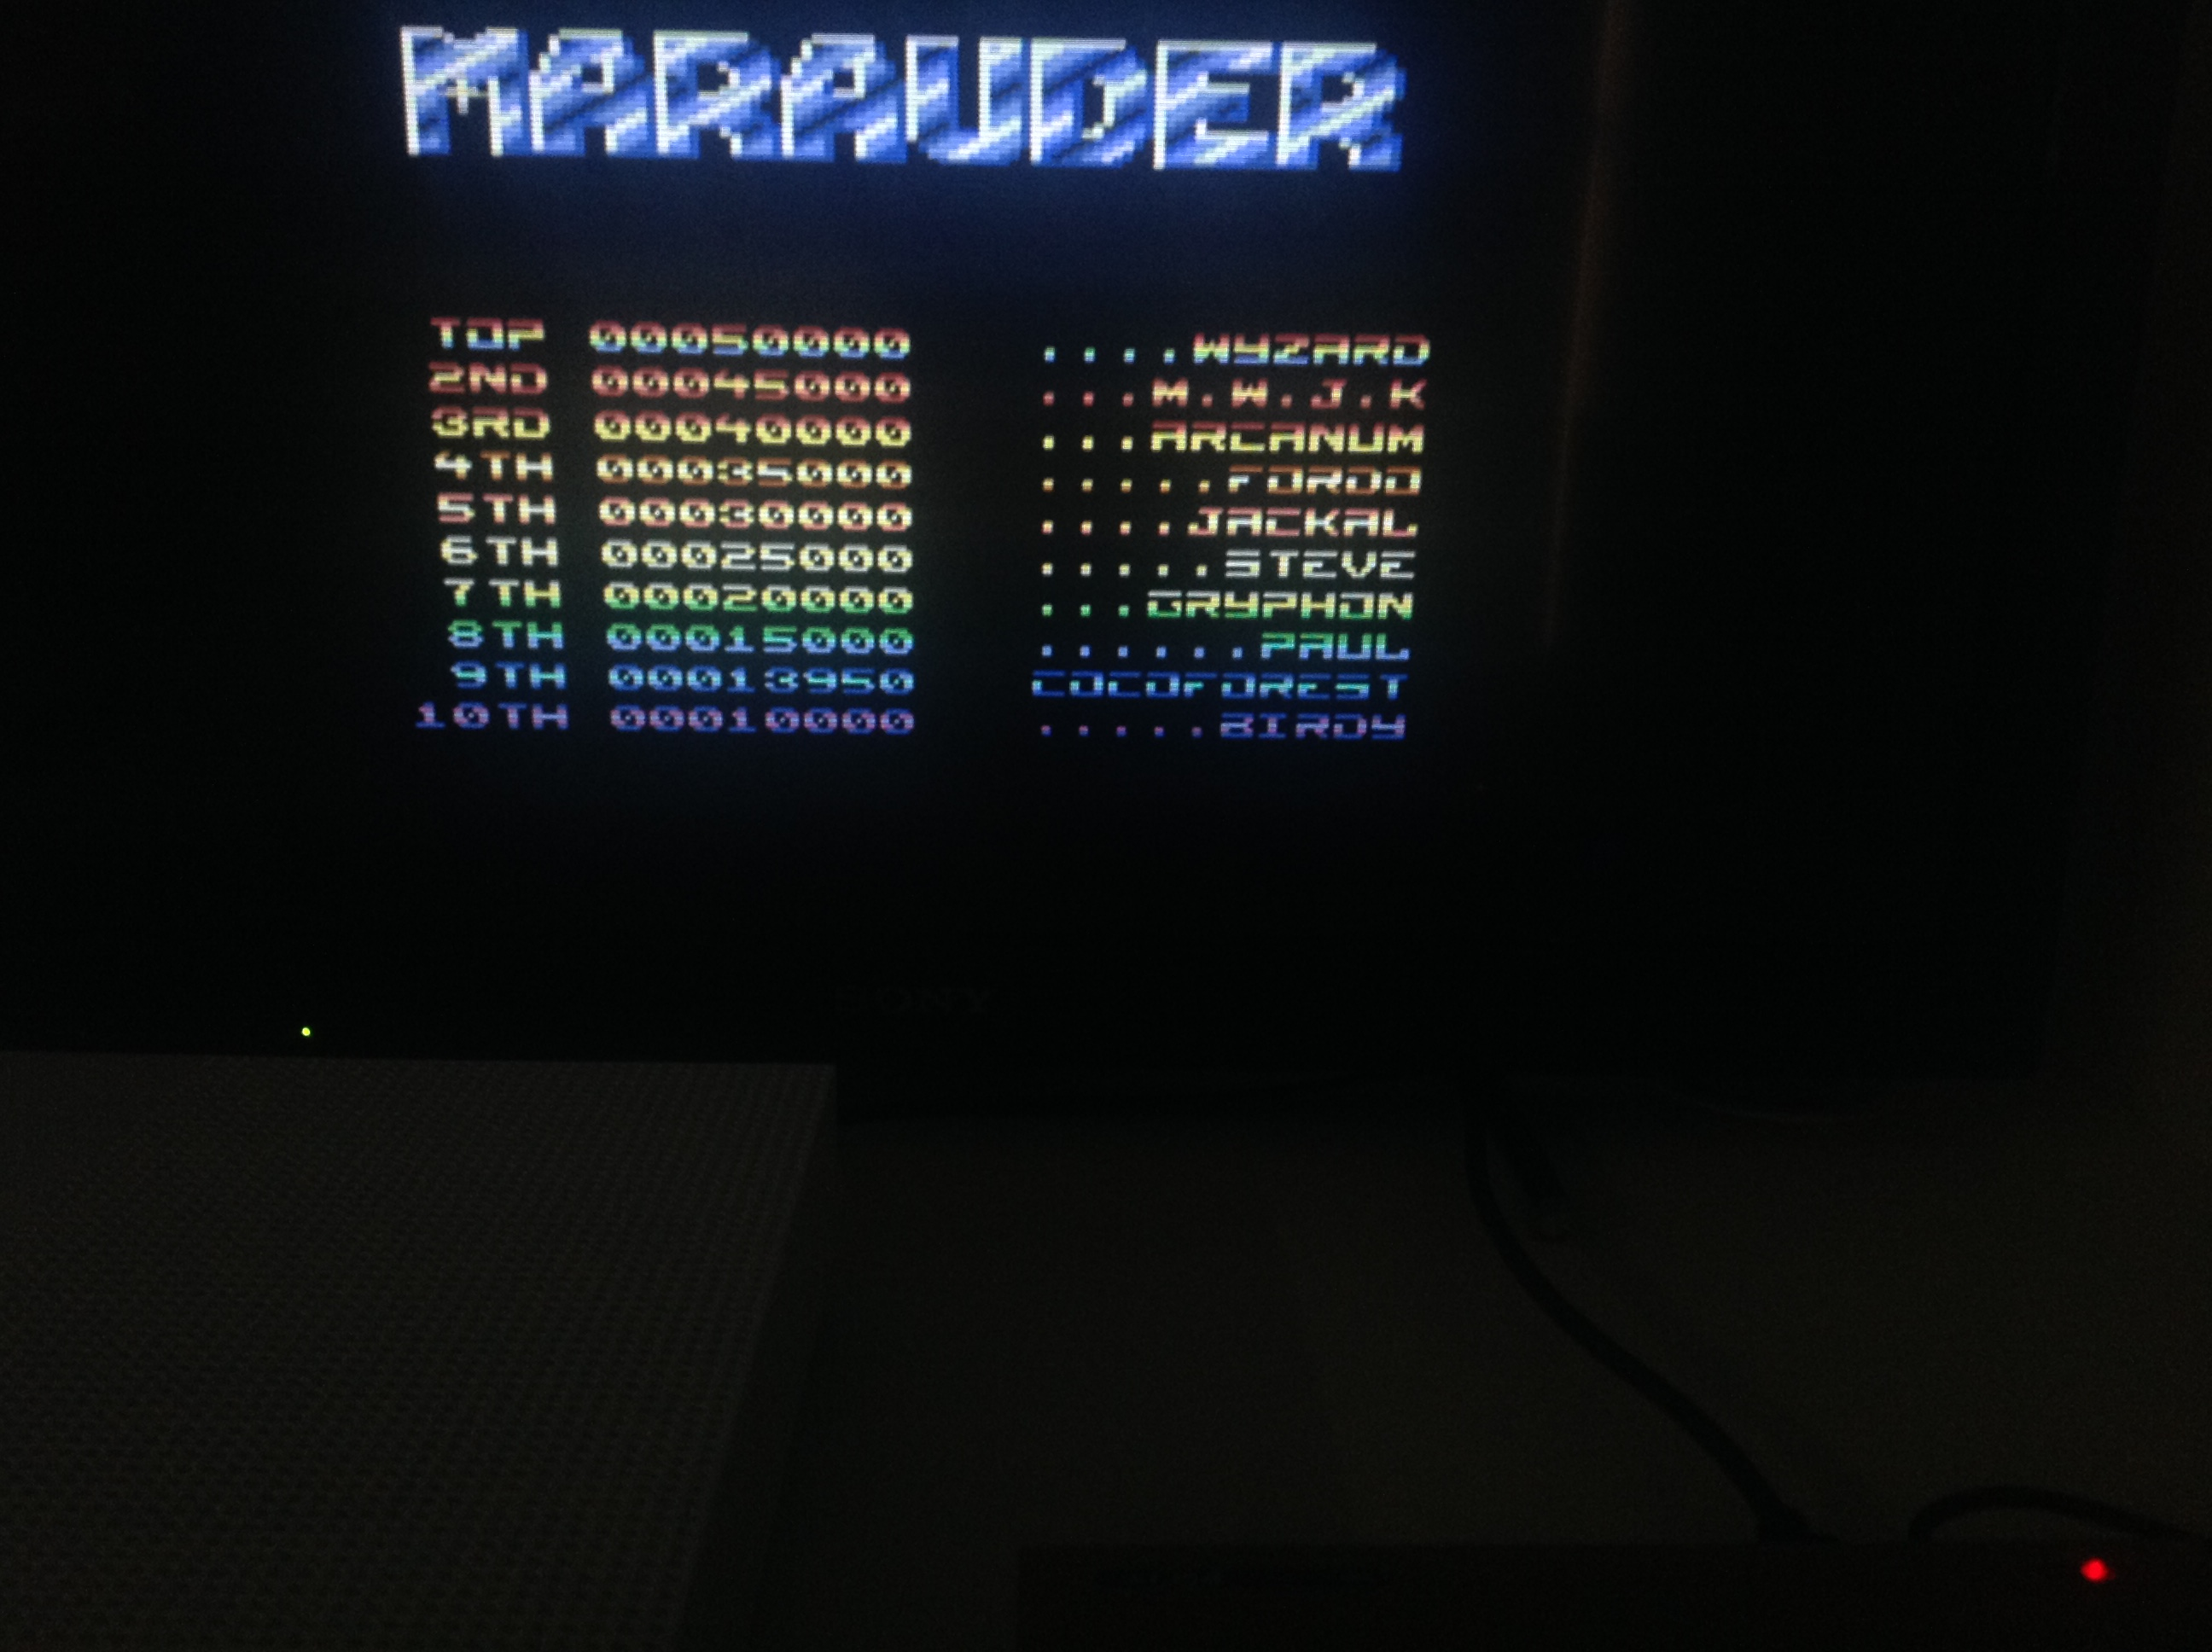 CoCoForest: Marauder (Commodore 64 Emulated) 13,950 points on 2018-04-19 05:09:33